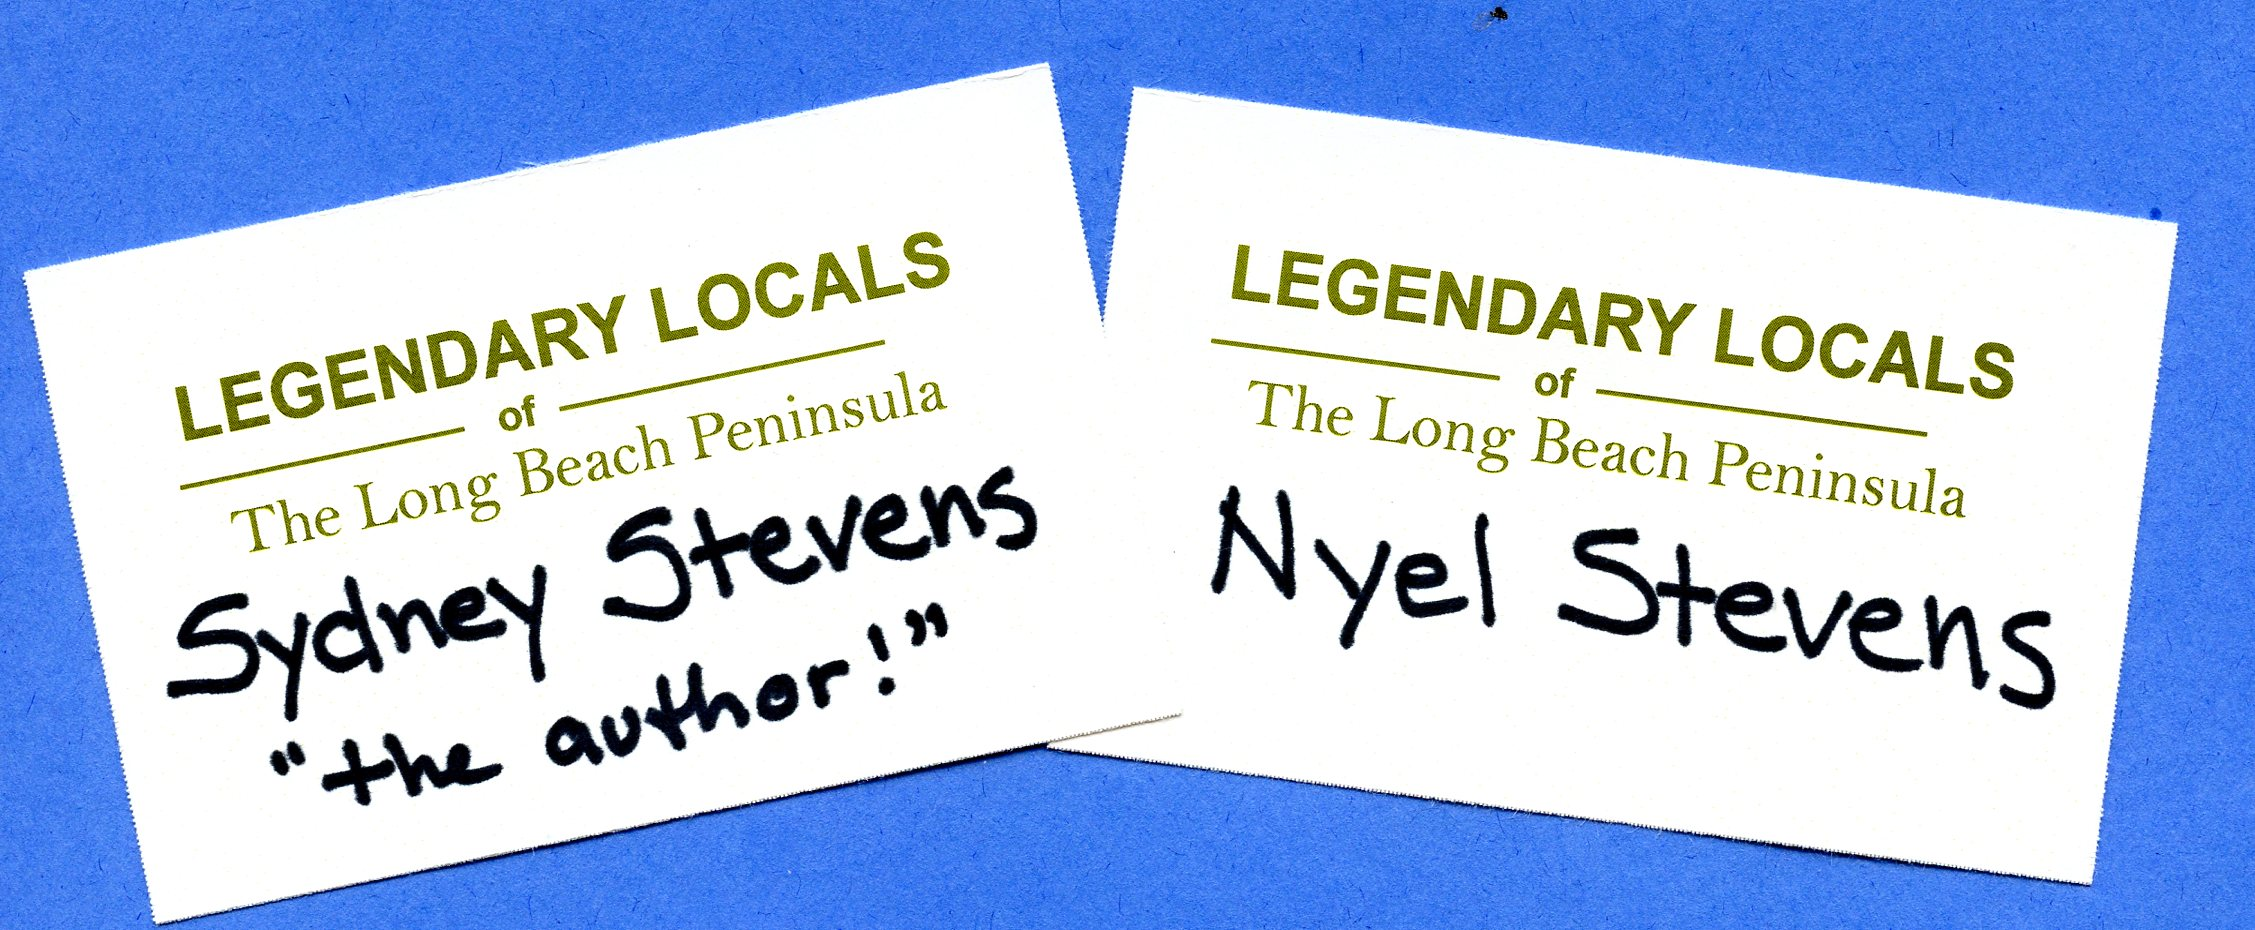 Name Tags, June 29, 2013